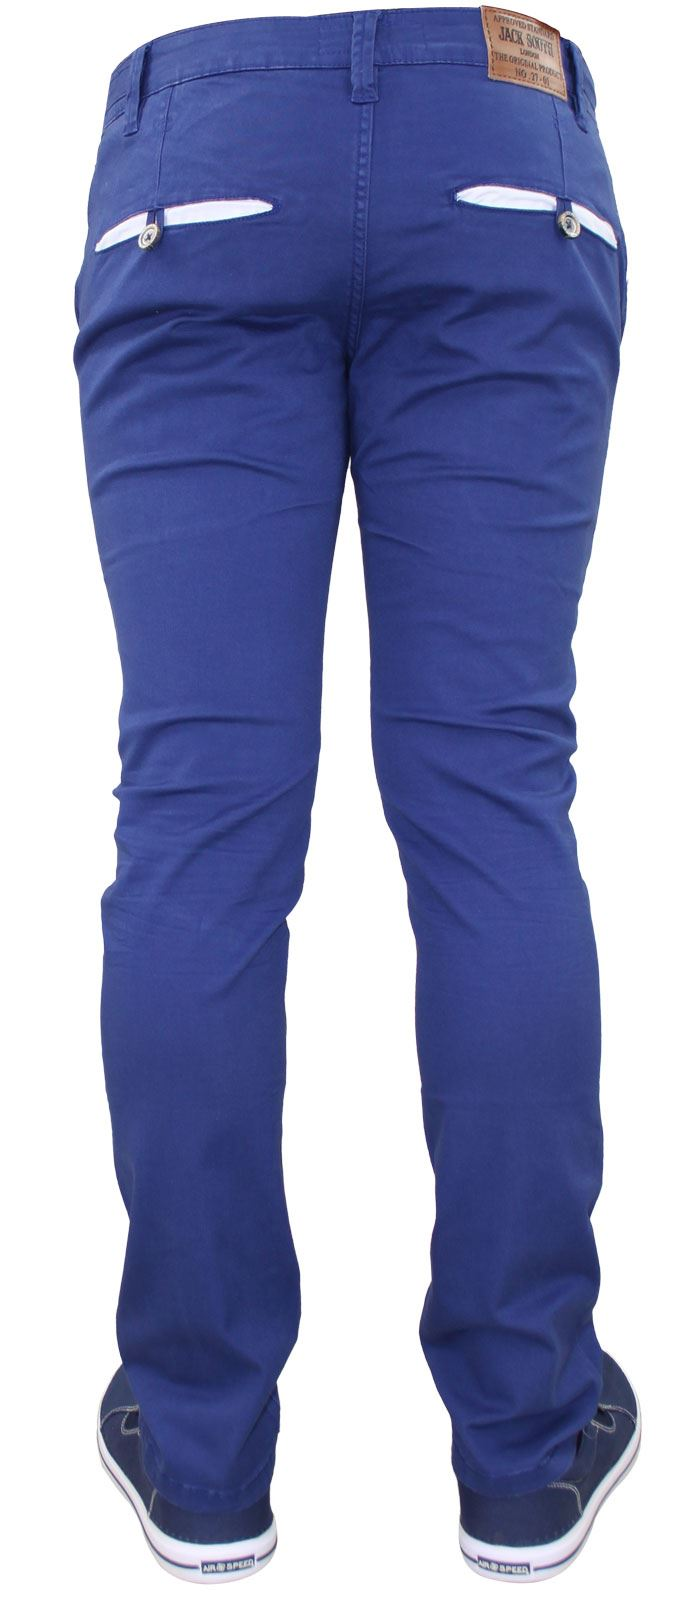 Men-Chinos-Trousers-Regular-Fit-Stretch-Cotton-Jeans-Pants-All-Waist-Sizes thumbnail 5